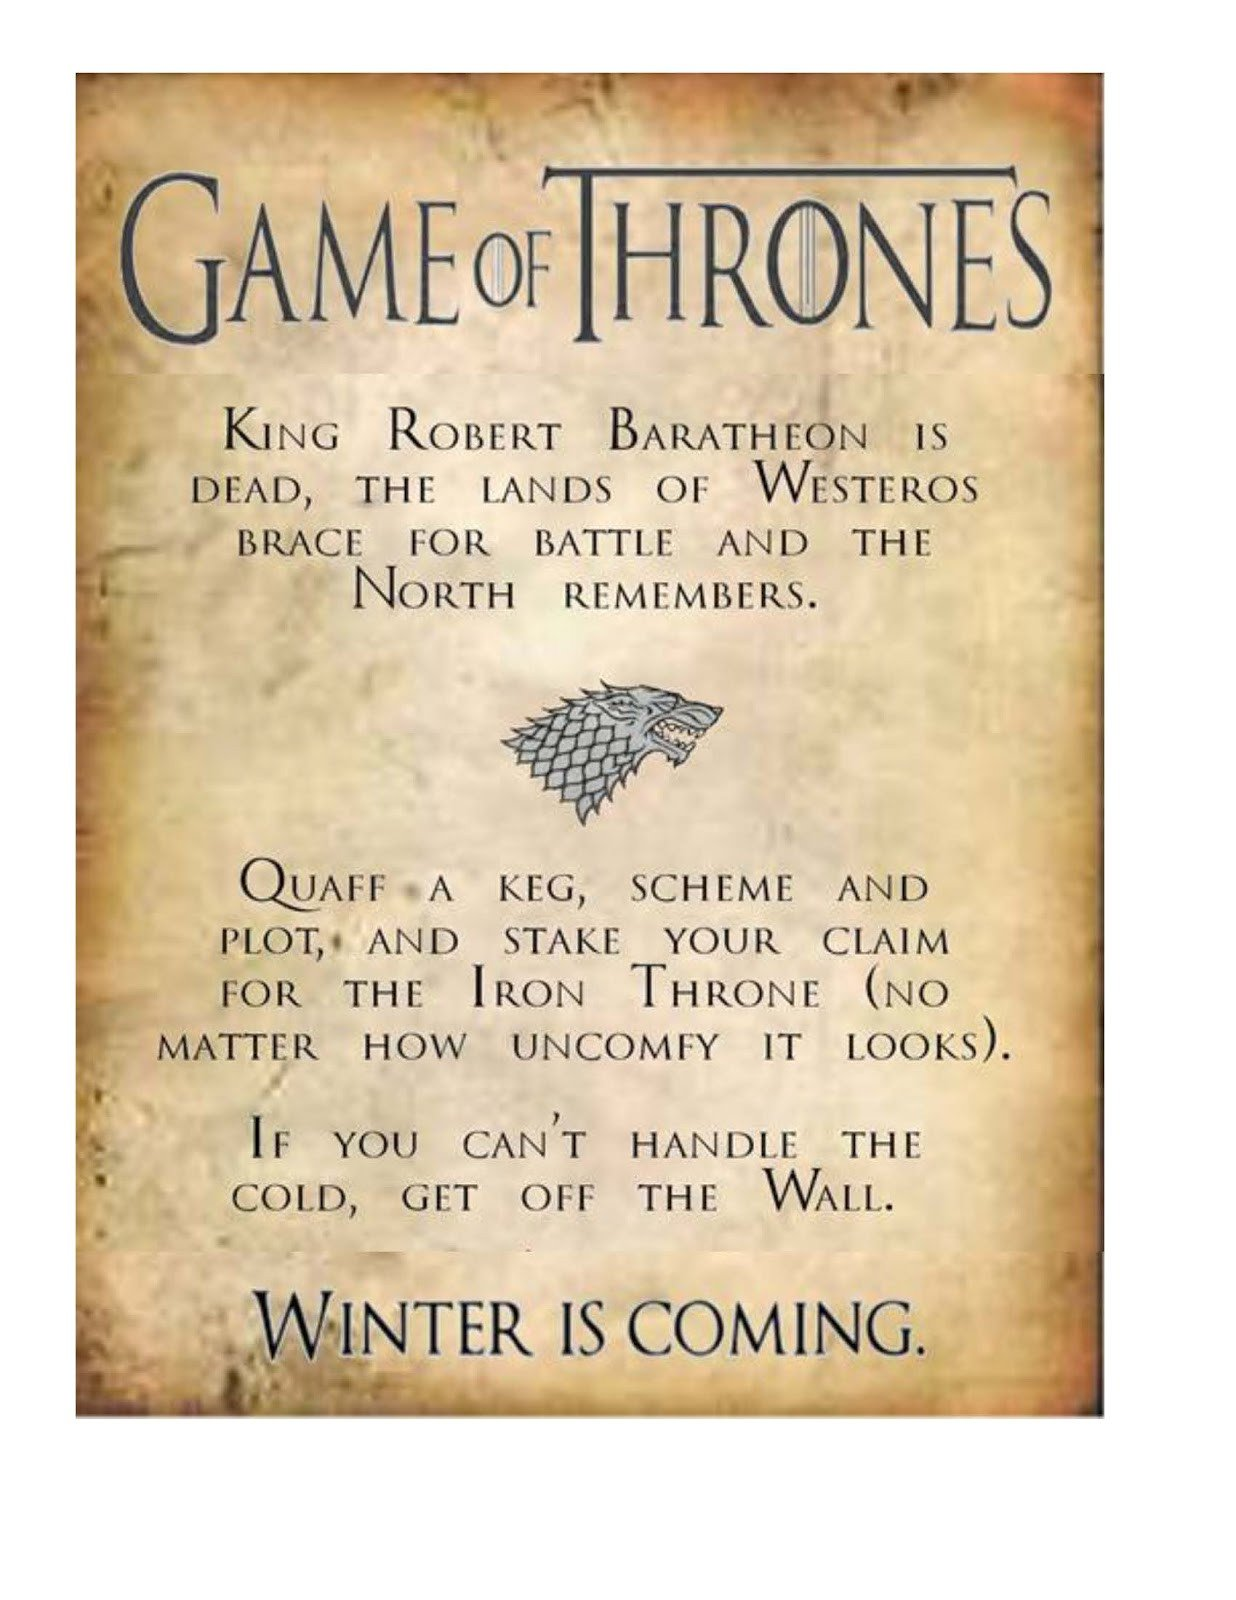 Game Of Thrones Menu Template Obsessive Game Of Thrones Party Planning Guide S3pp